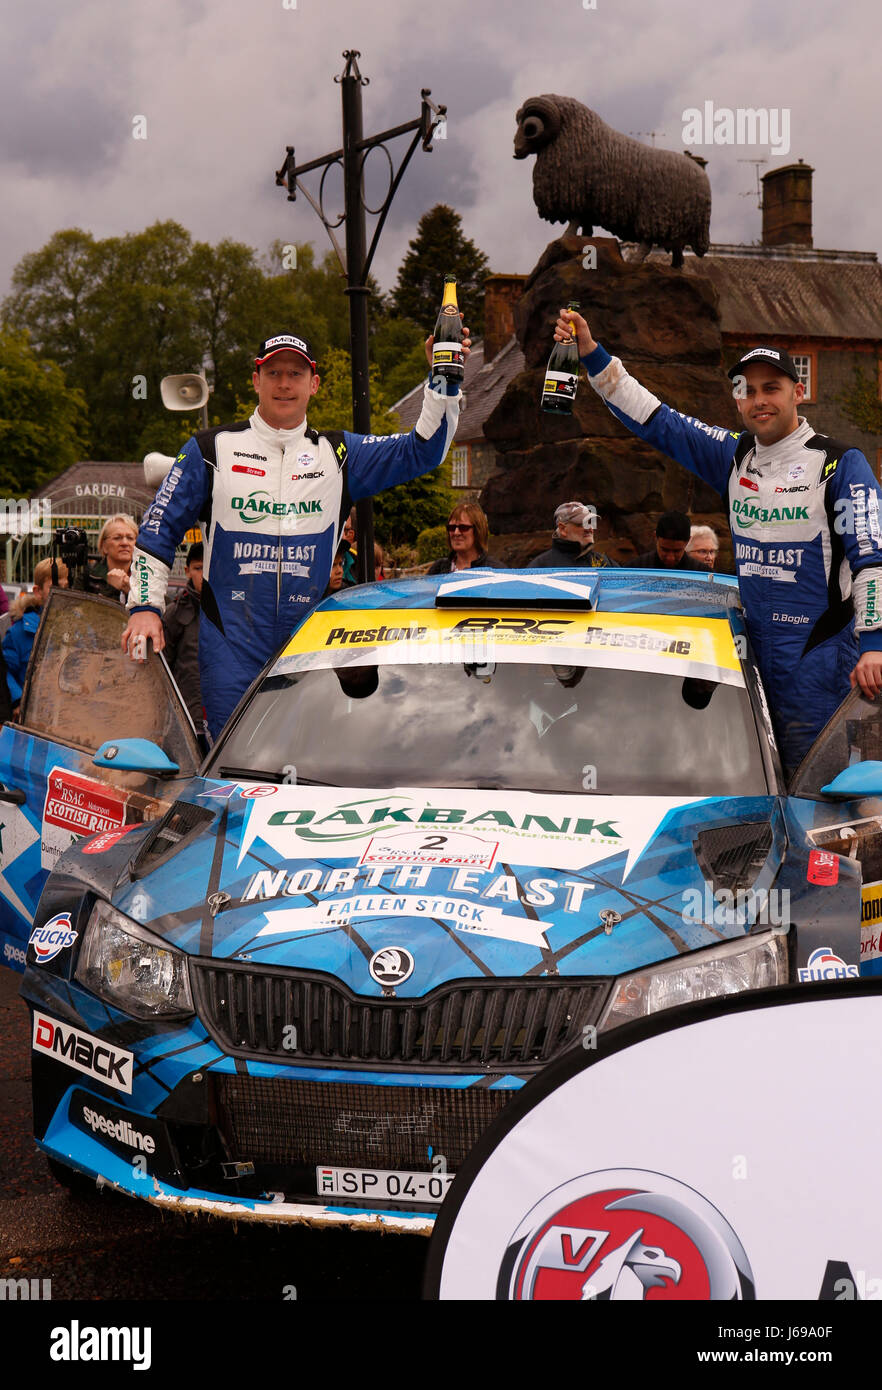 Dumfries and Galloway, UK. 20th May, 2017. Winners of the RSAC Scottish Rally at Moffat, Dumfries and Galloway, - Stock Image